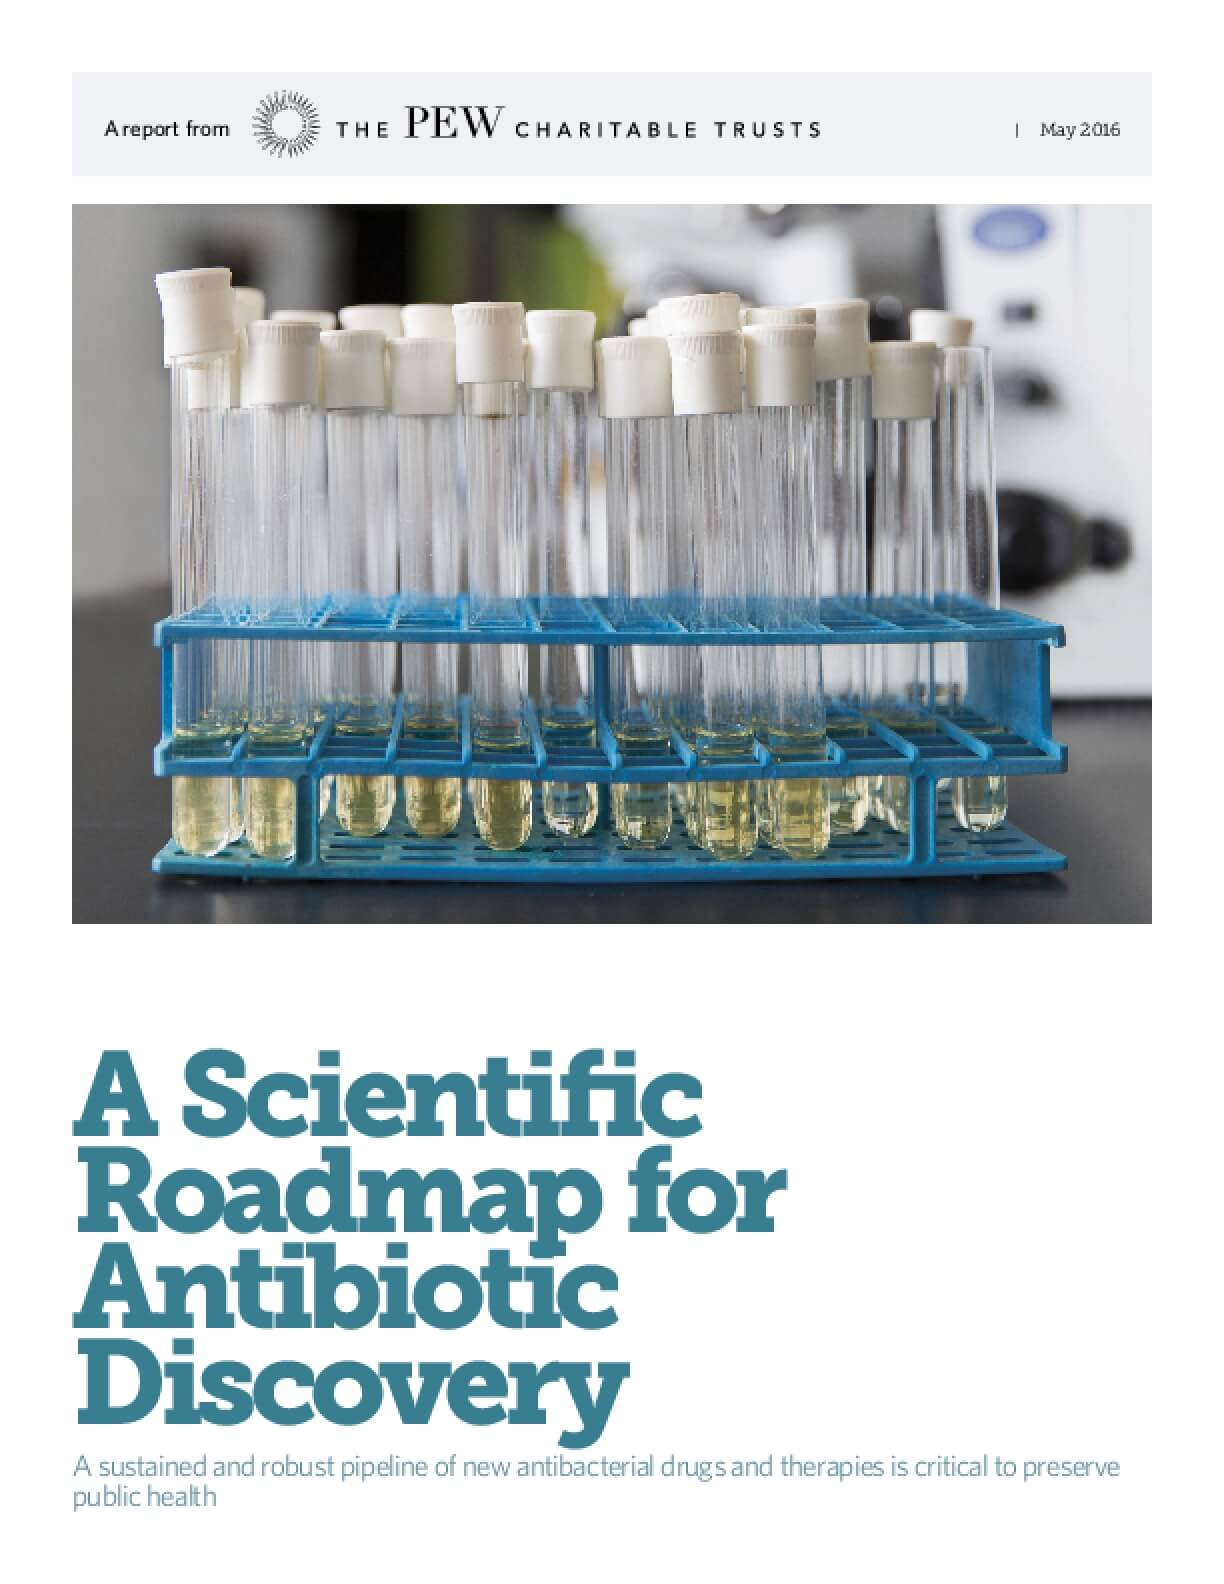 A Scientific Roadmap for Antibiotic Discovery: A Sustained and Robust Pipeline of New Antibacterial Drugs and Therapies is Critical to Preserve Public Health